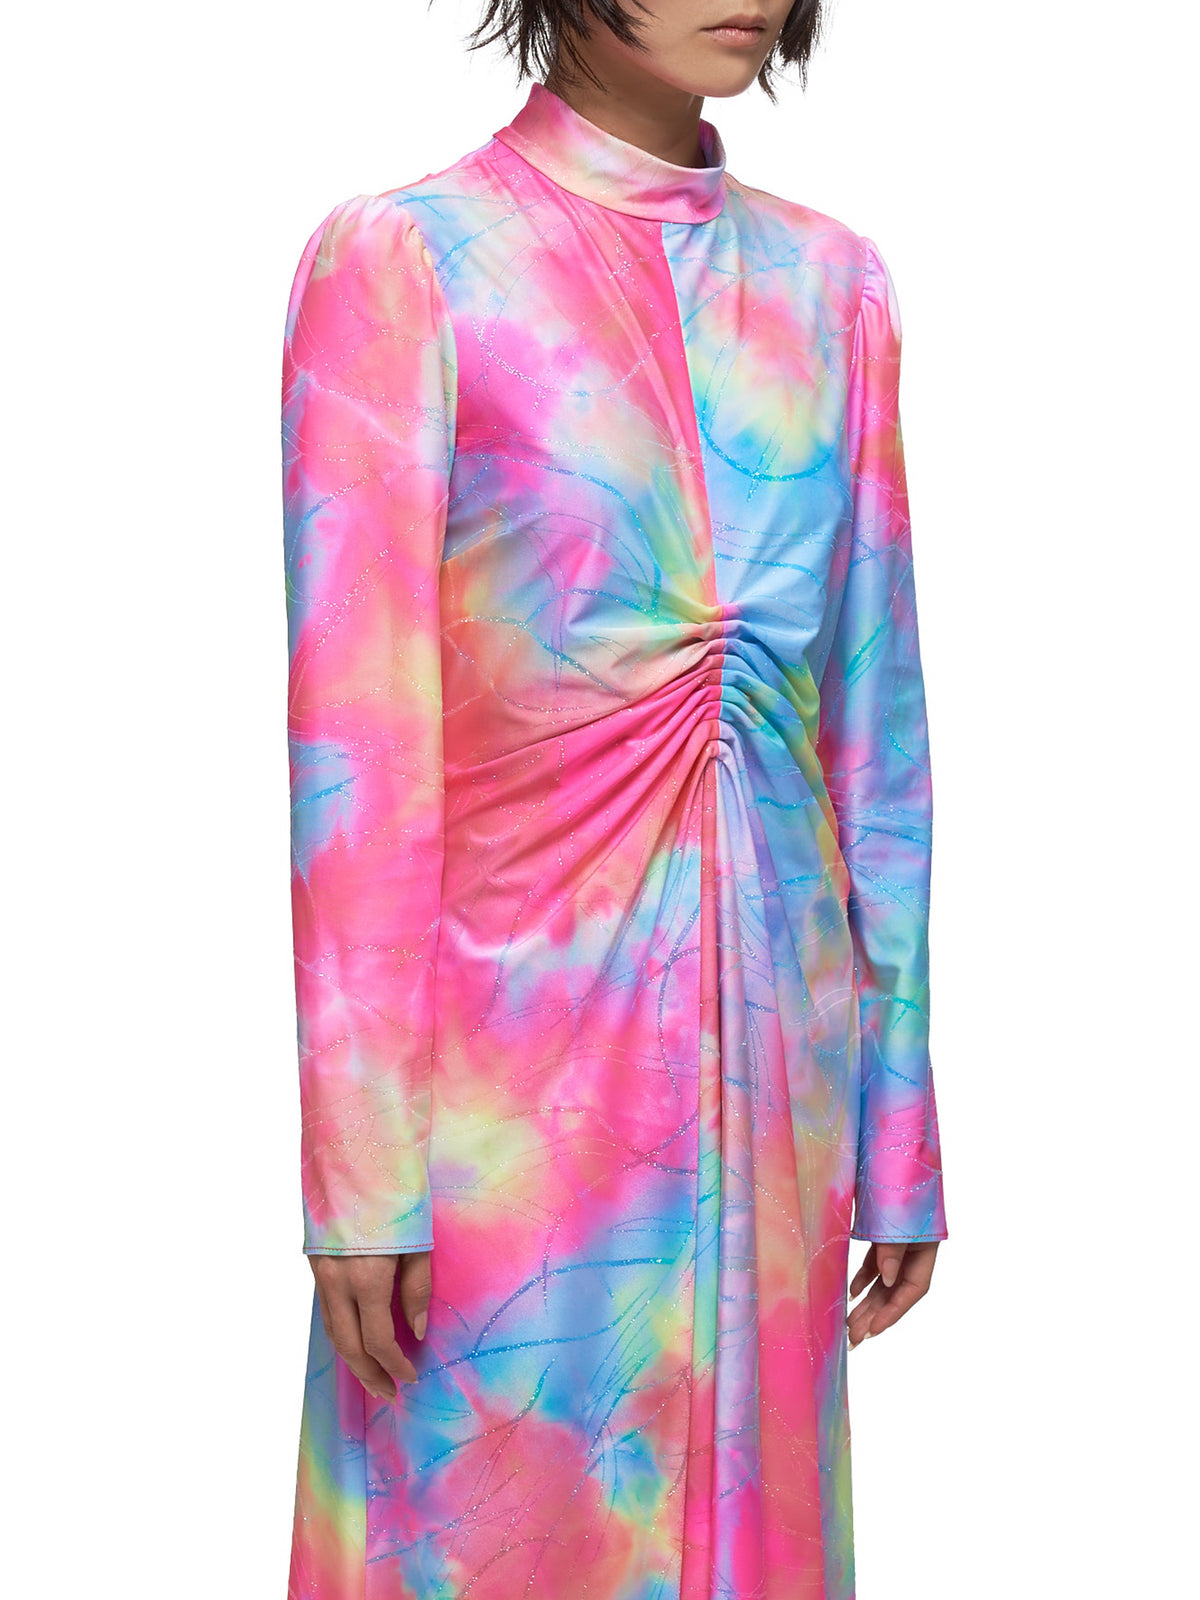 Nara Tie Dye Dress (12GN5175-MULTICOLOR)